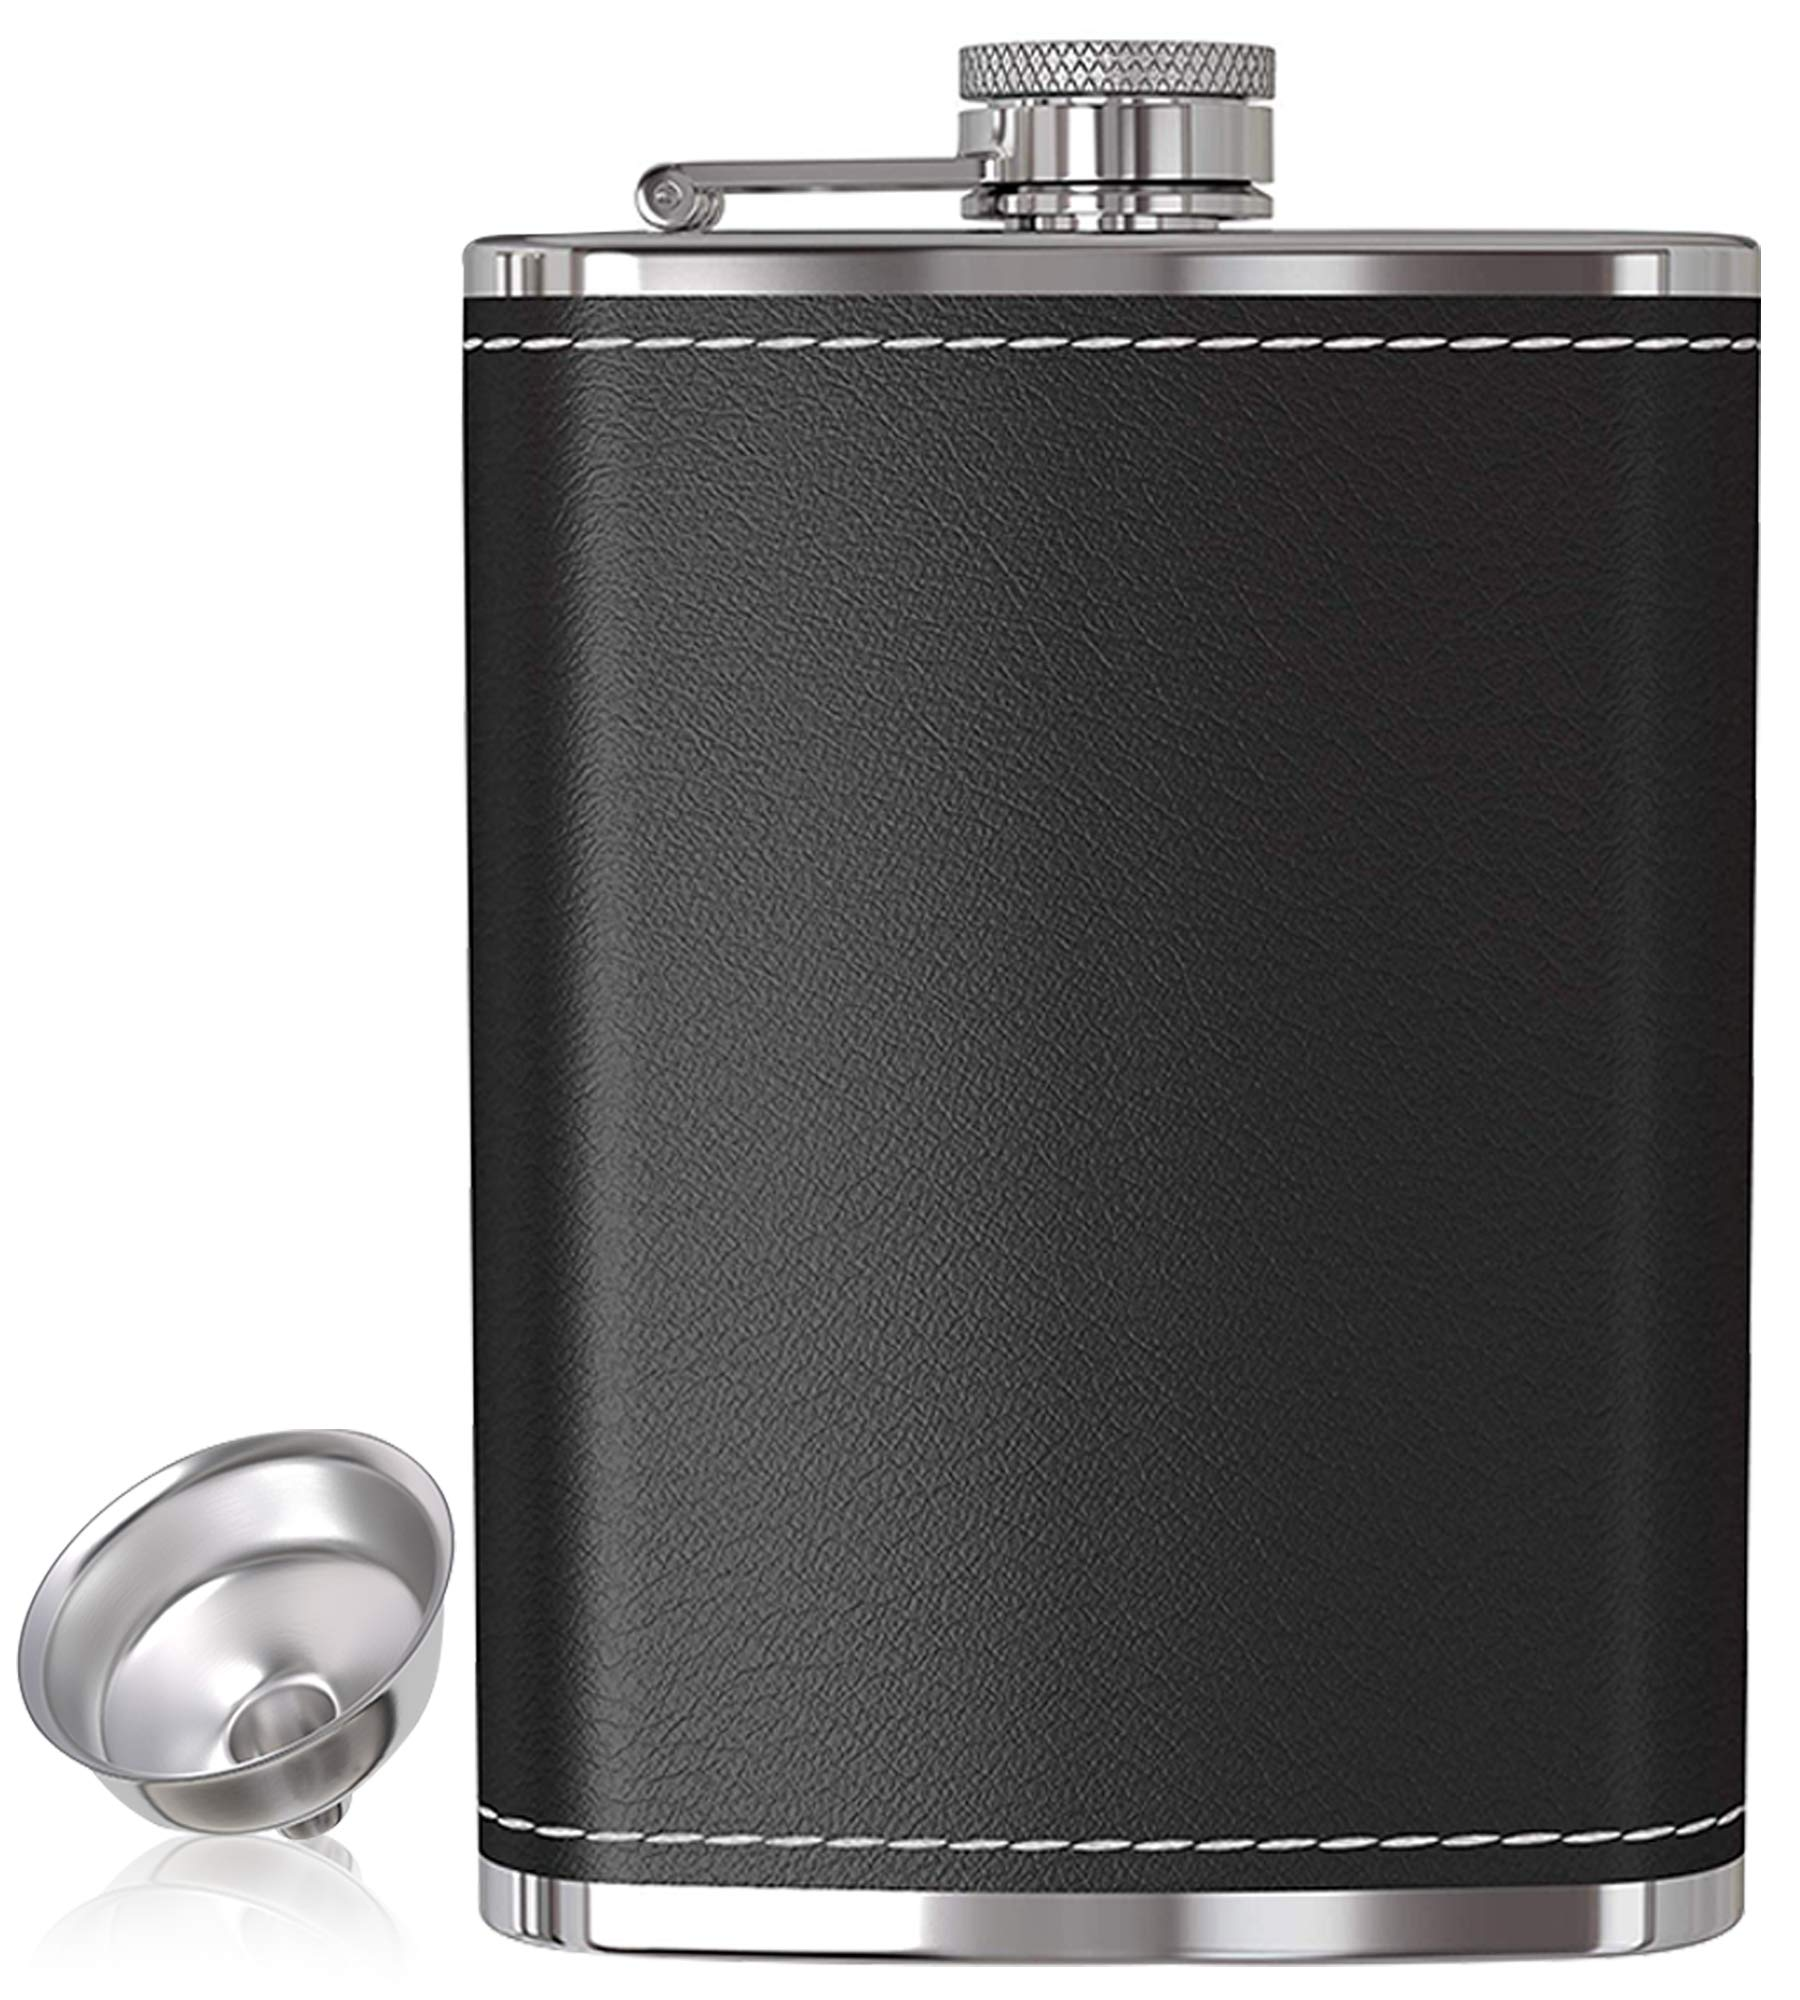 Flask for Liquor and Funnel - 8 Oz Leak Proof 18/8 Stainless Steel Pocket Hip Flask with Black Leather Cover for Discrete Shot Drinking of Alcohol, Whiskey, Rum and Vodka | Gift for Men by My Trendy Kitchen